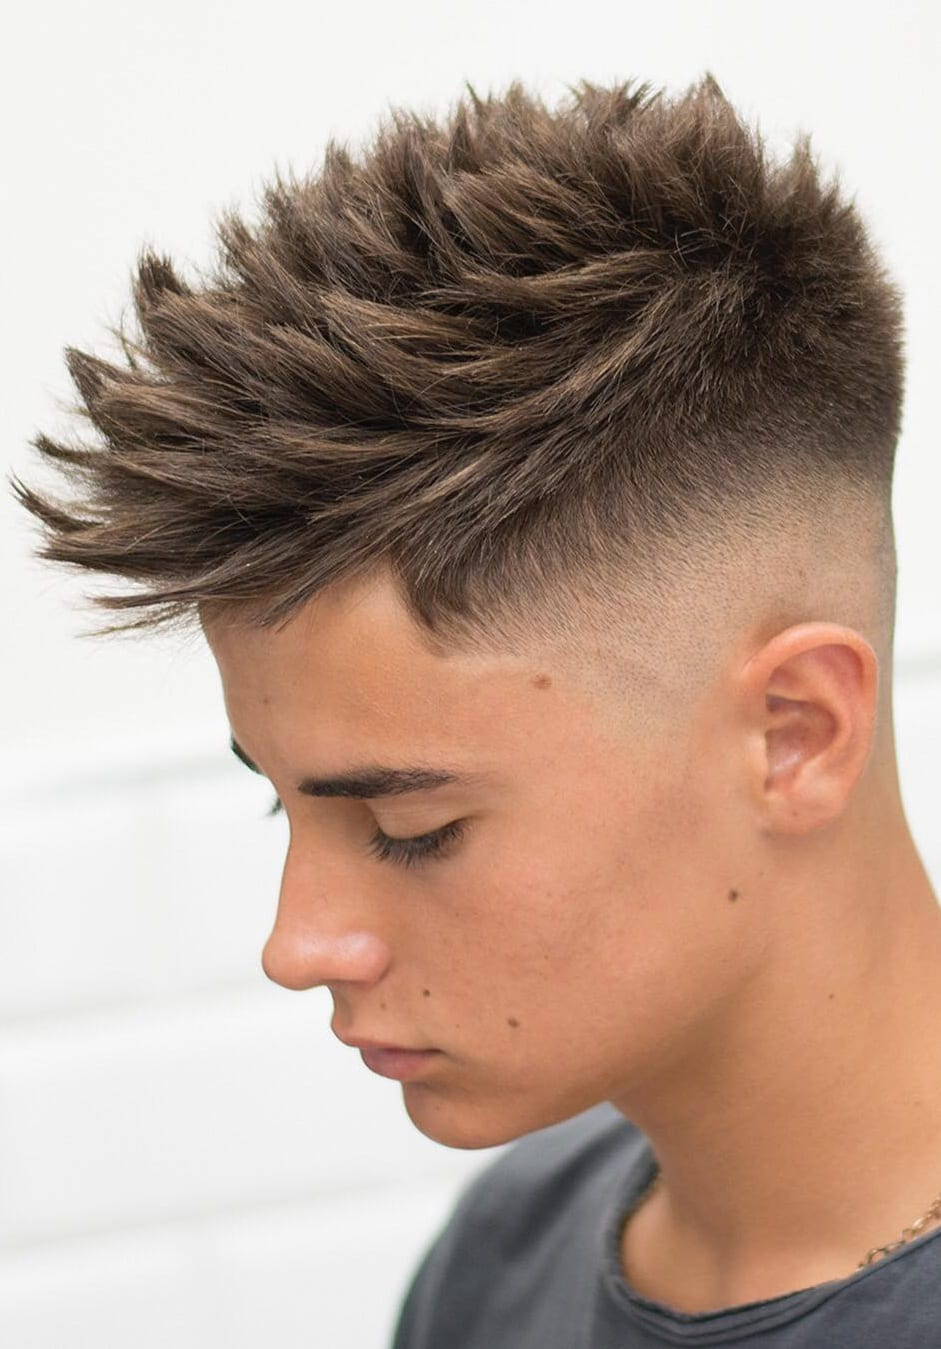 Medium Spikes Hairstyle For Men.